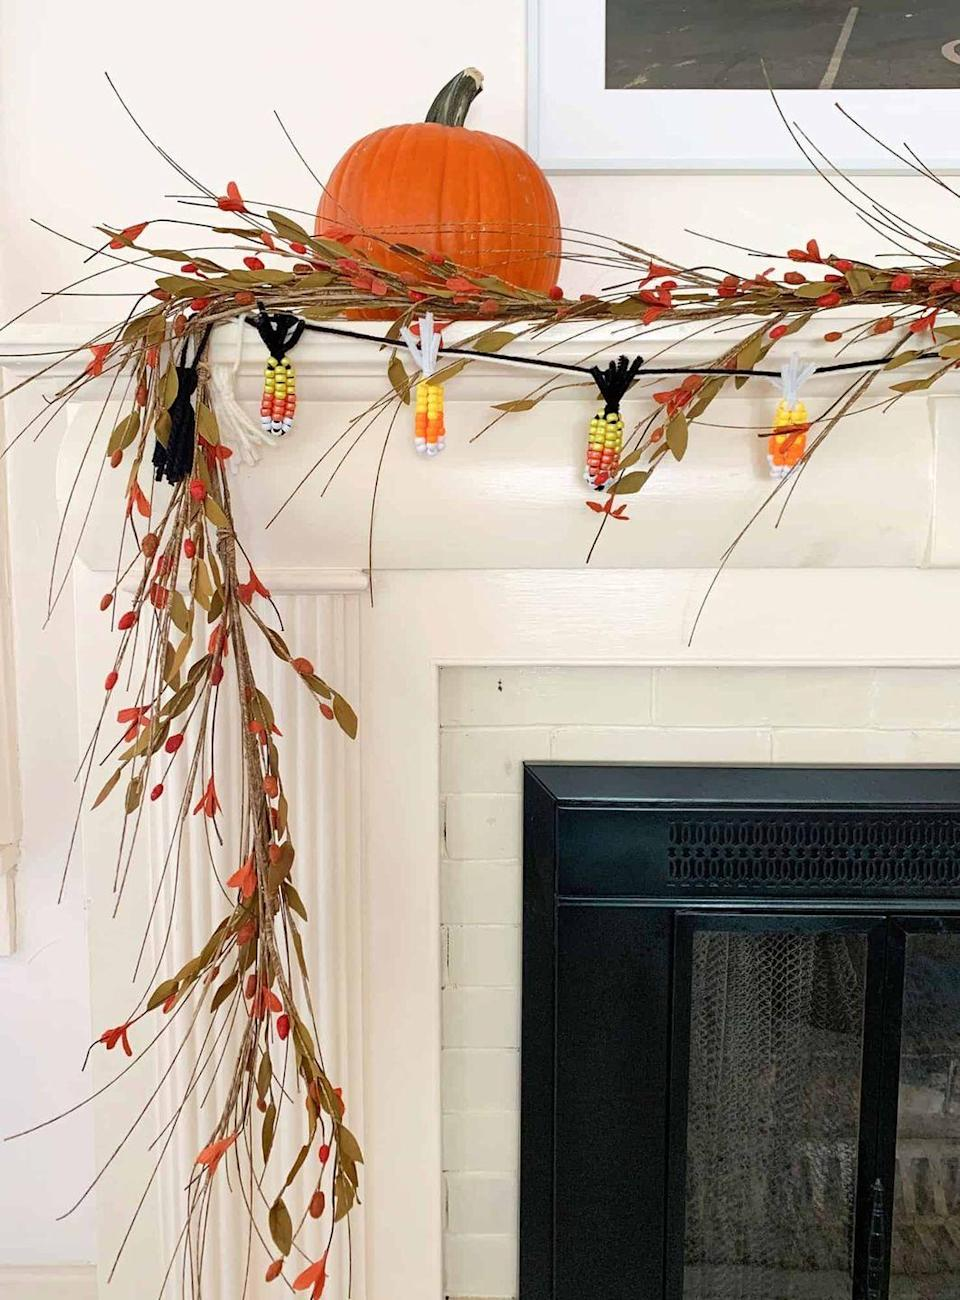 """<p>Yum—candy corn! Except this time, your favorite fall treat is dressing up a garland for your fireplace. </p><p><strong>Get the tutorial at <a href=""""https://abeautifulmess.com/diy-candy-corn-garland/"""" rel=""""nofollow noopener"""" target=""""_blank"""" data-ylk=""""slk:A Beautiful Mess"""" class=""""link rapid-noclick-resp"""">A Beautiful Mess</a>.</strong></p><p><a class=""""link rapid-noclick-resp"""" href=""""https://go.redirectingat.com?id=74968X1596630&url=https%3A%2F%2Fwww.walmart.com%2Fip%2F500-Pack-Black-Pipe-Cleaners-Craft-Fuzzy-Sticks-Chenille-Stems-for-Art-Creative-DIY-Kids-Creativity-Decoration-6-mm-x-12-Inch%2F679423008&sref=https%3A%2F%2Fwww.thepioneerwoman.com%2Fhome-lifestyle%2Fcrafts-diy%2Fg36891743%2Ffall-mantel-decorations%2F"""" rel=""""nofollow noopener"""" target=""""_blank"""" data-ylk=""""slk:SHOP PIPE CLEANERS"""">SHOP PIPE CLEANERS</a></p>"""